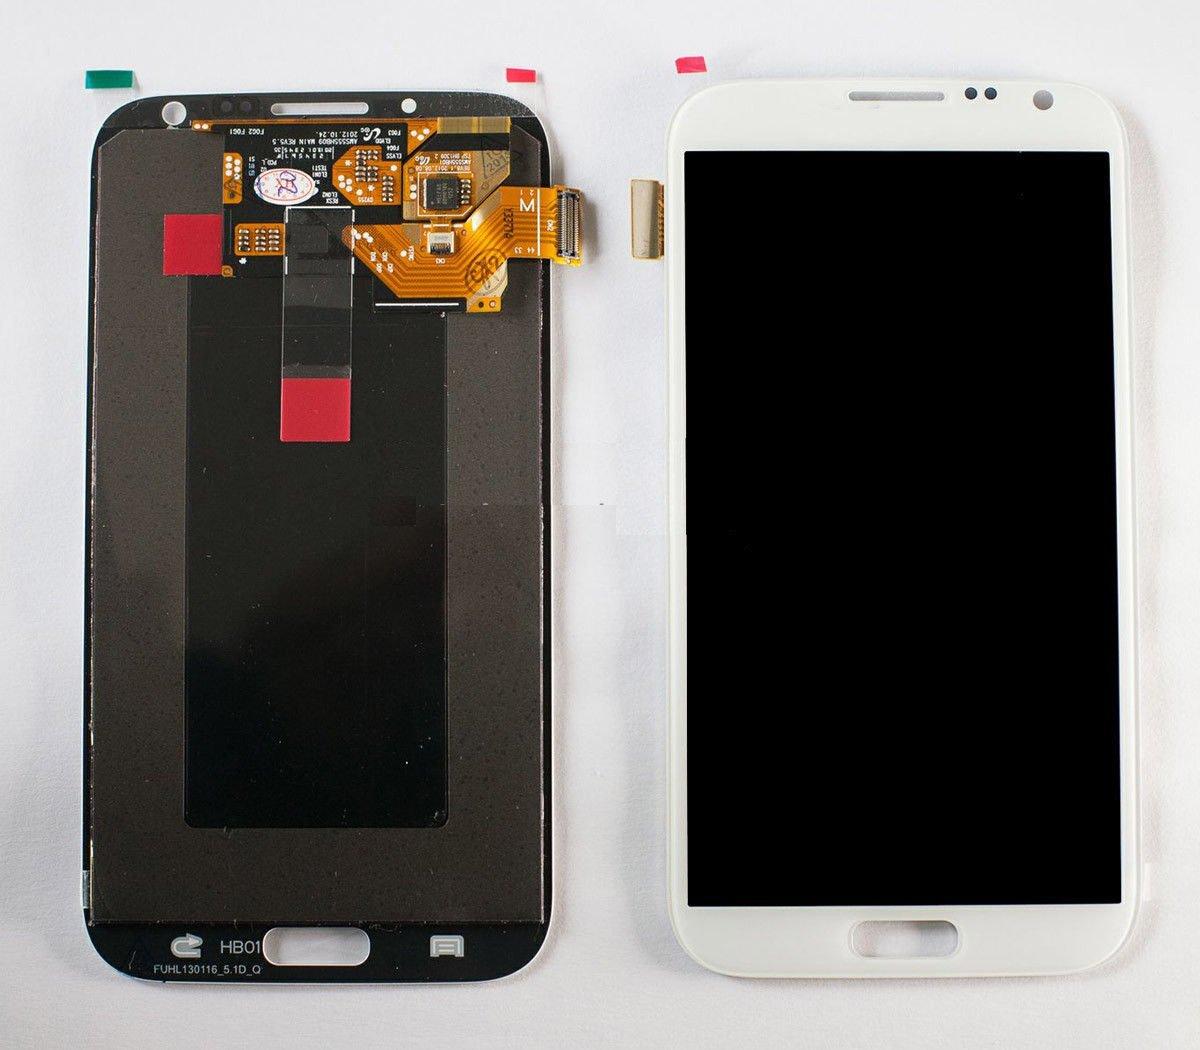 Samsung Galaxy Note 2 II T889 i605 Touch Screen Glass Digitizer LCD Assembly